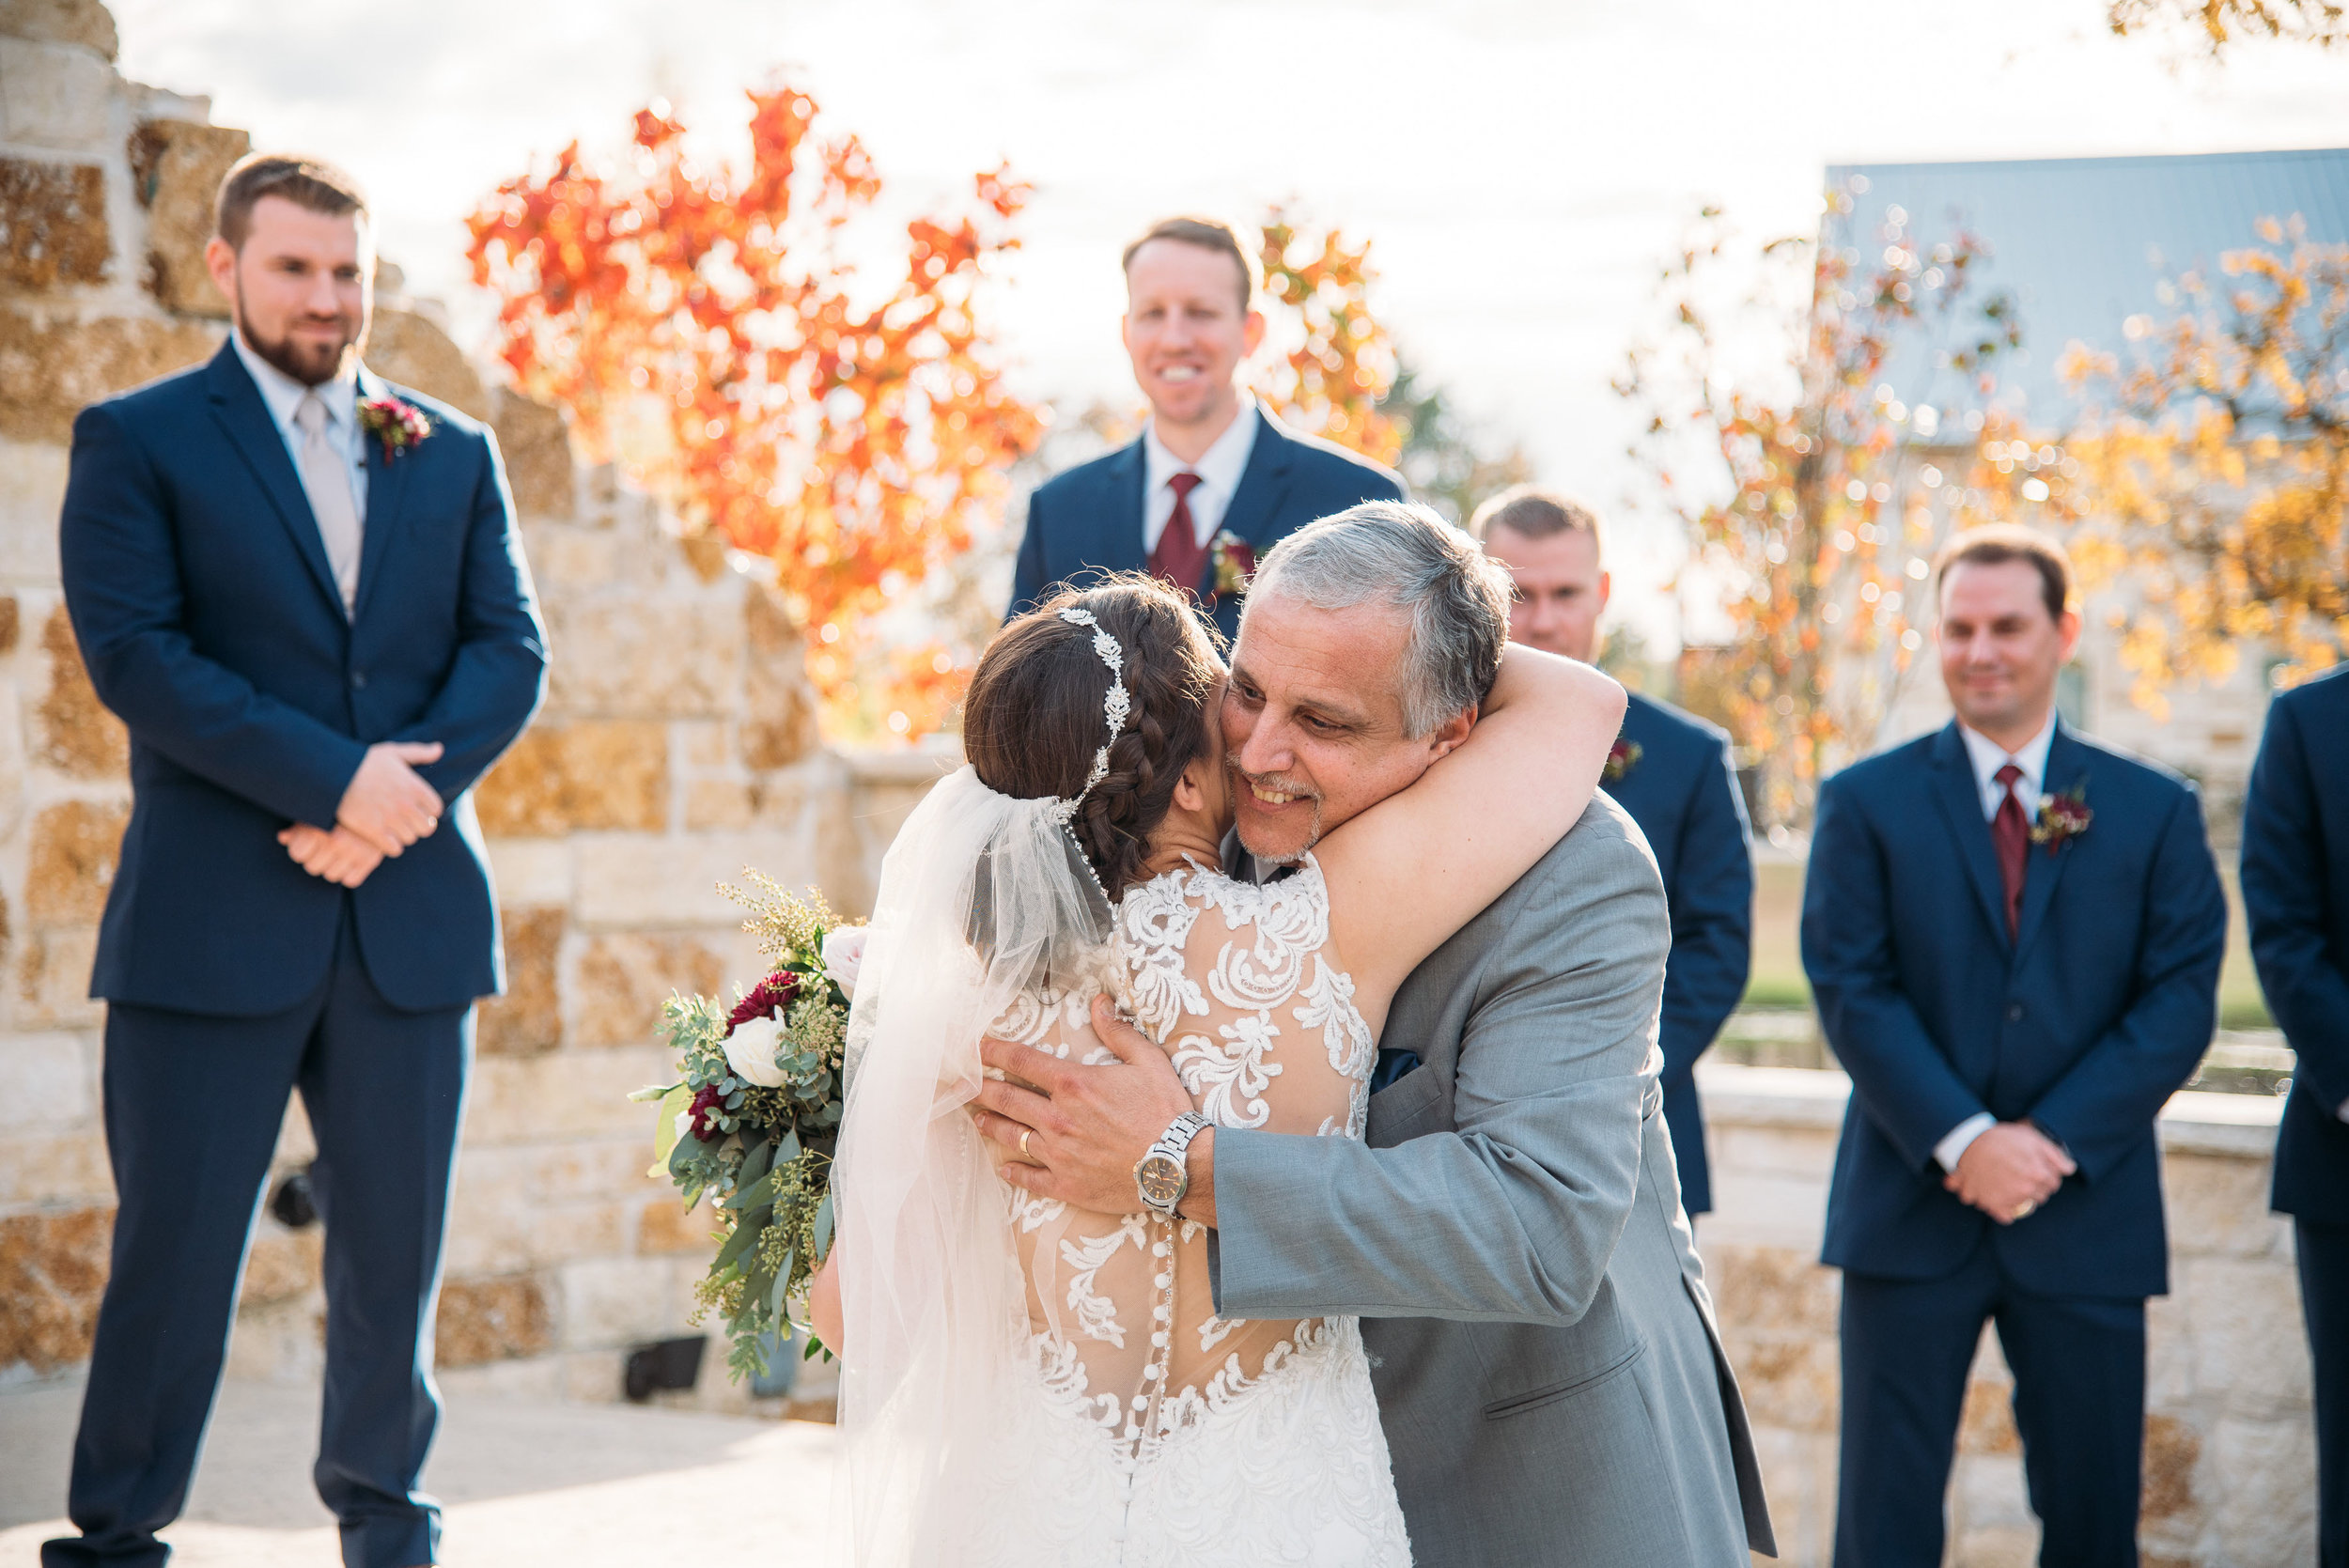 BrownstoneReserve_CollegeStation_WeddingPhotographer_35.jpg